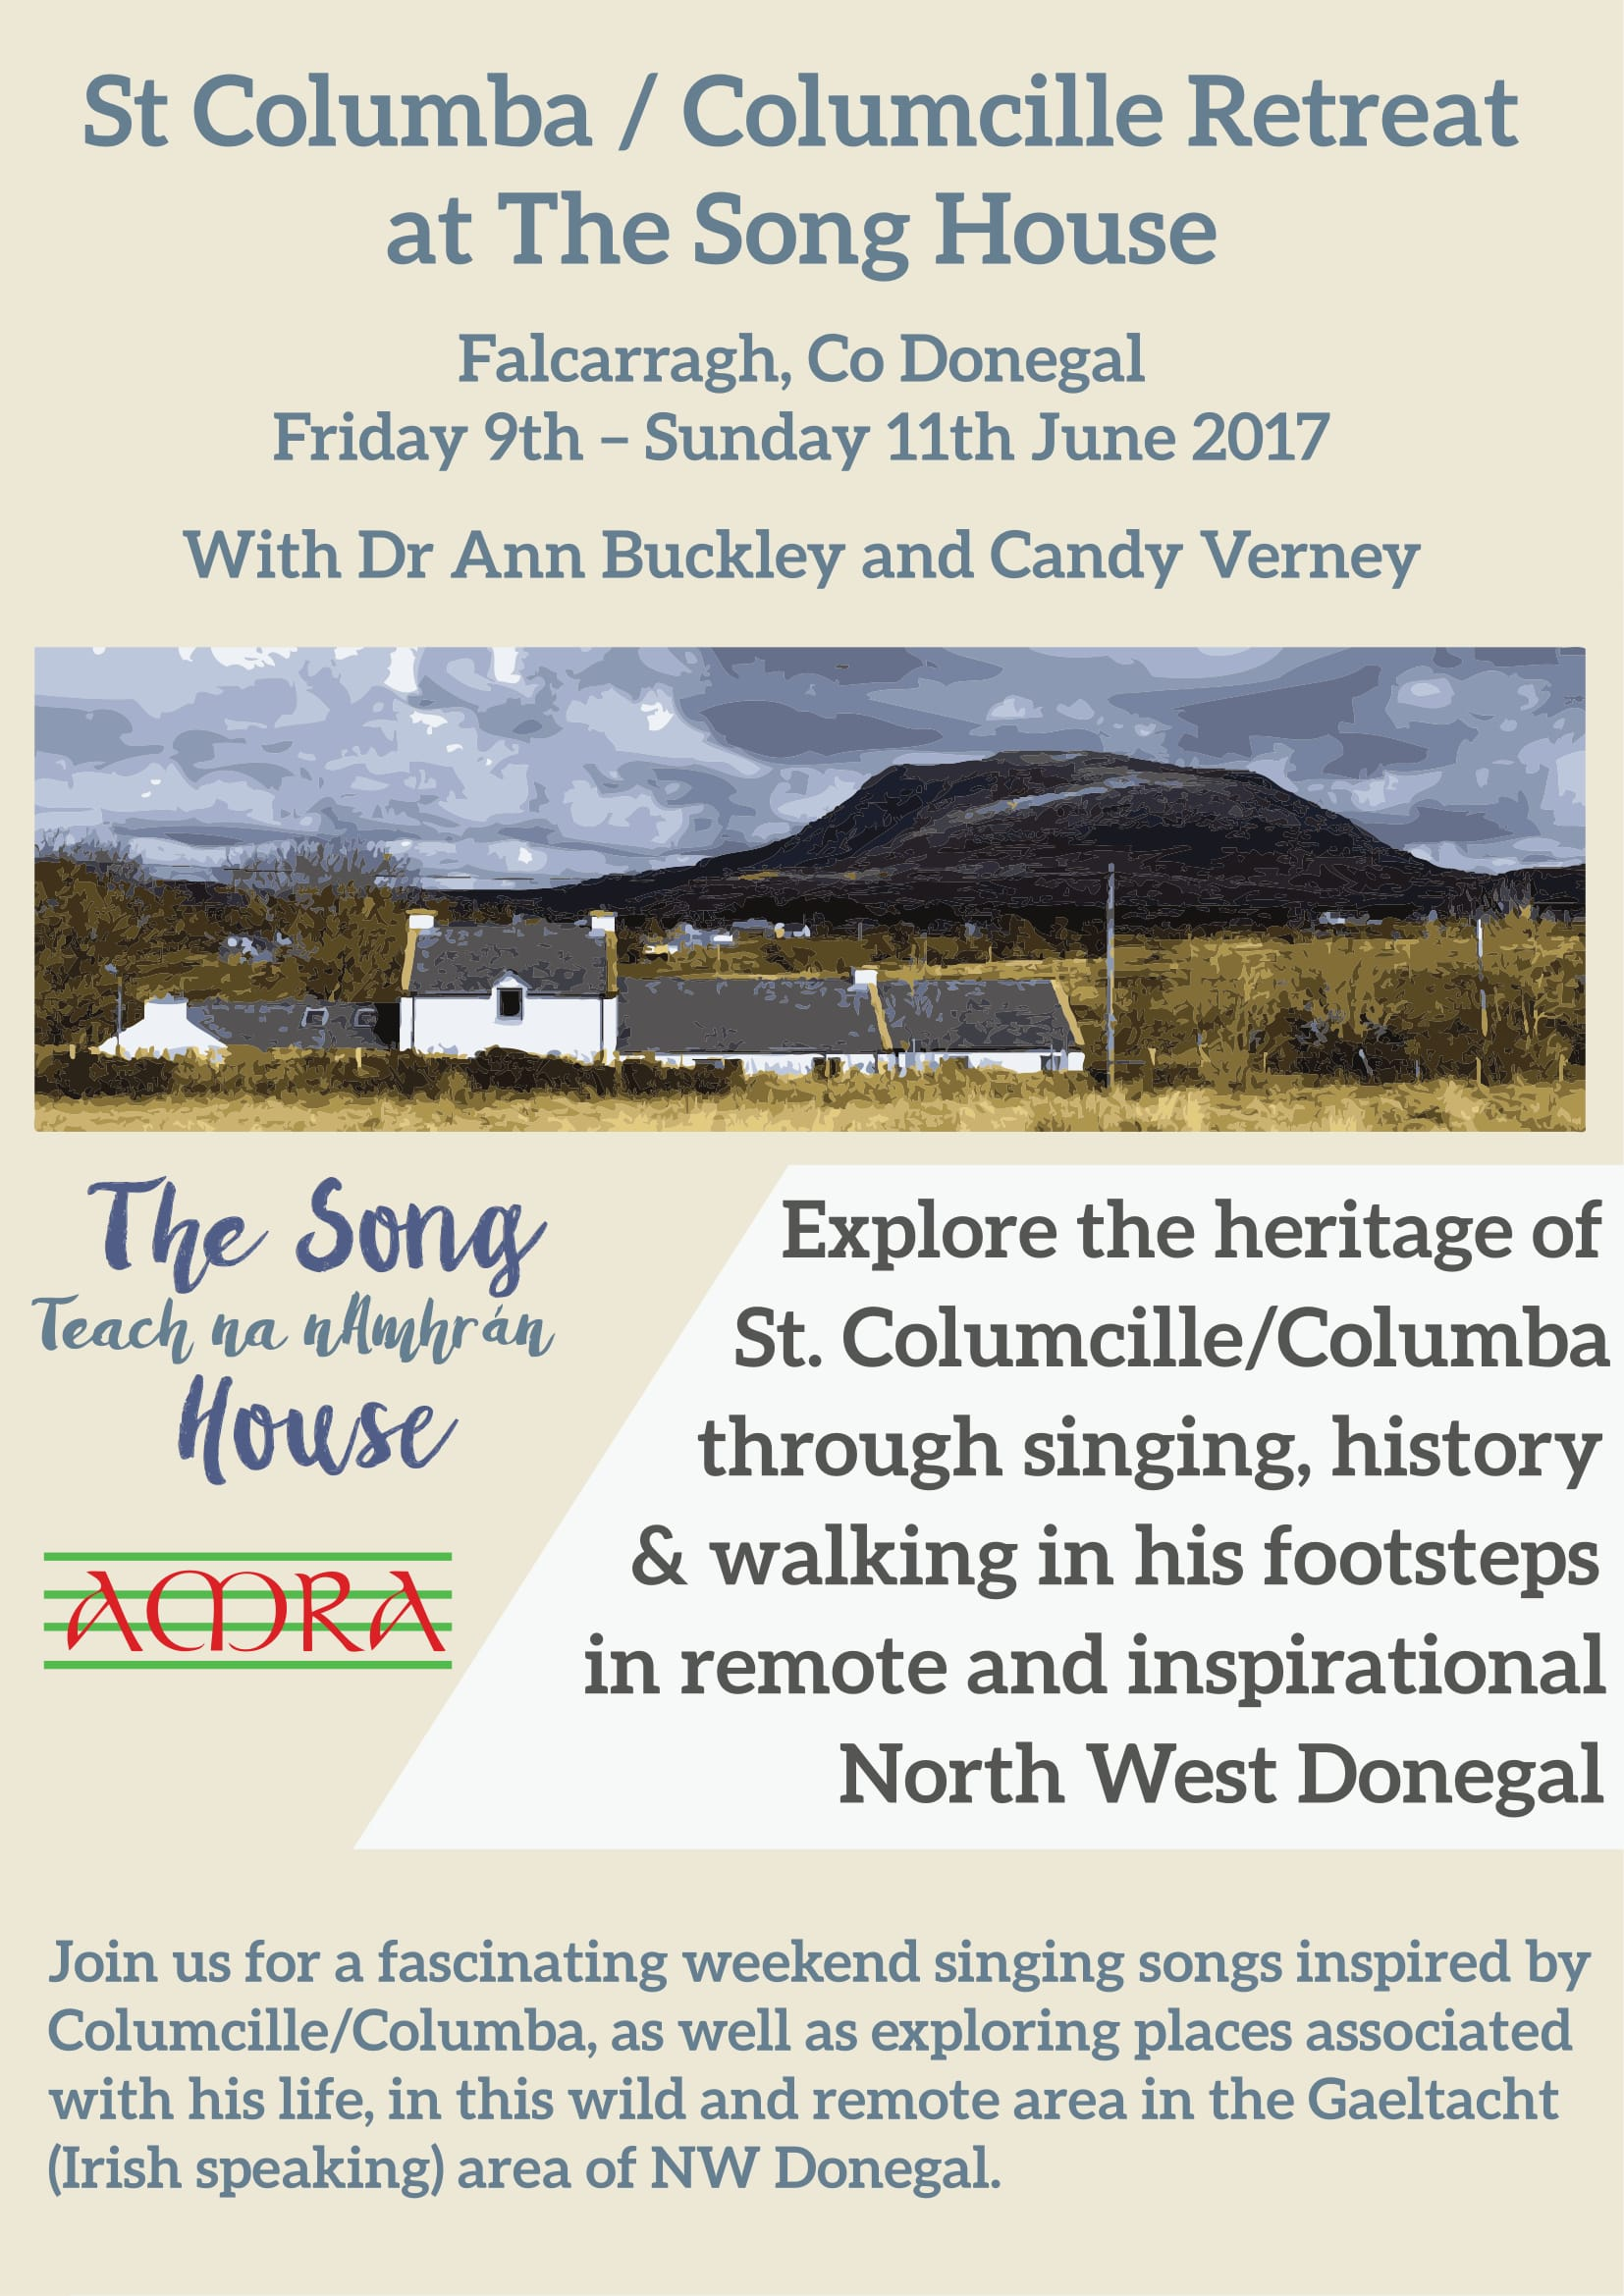 St Columba / Columcille Retreat